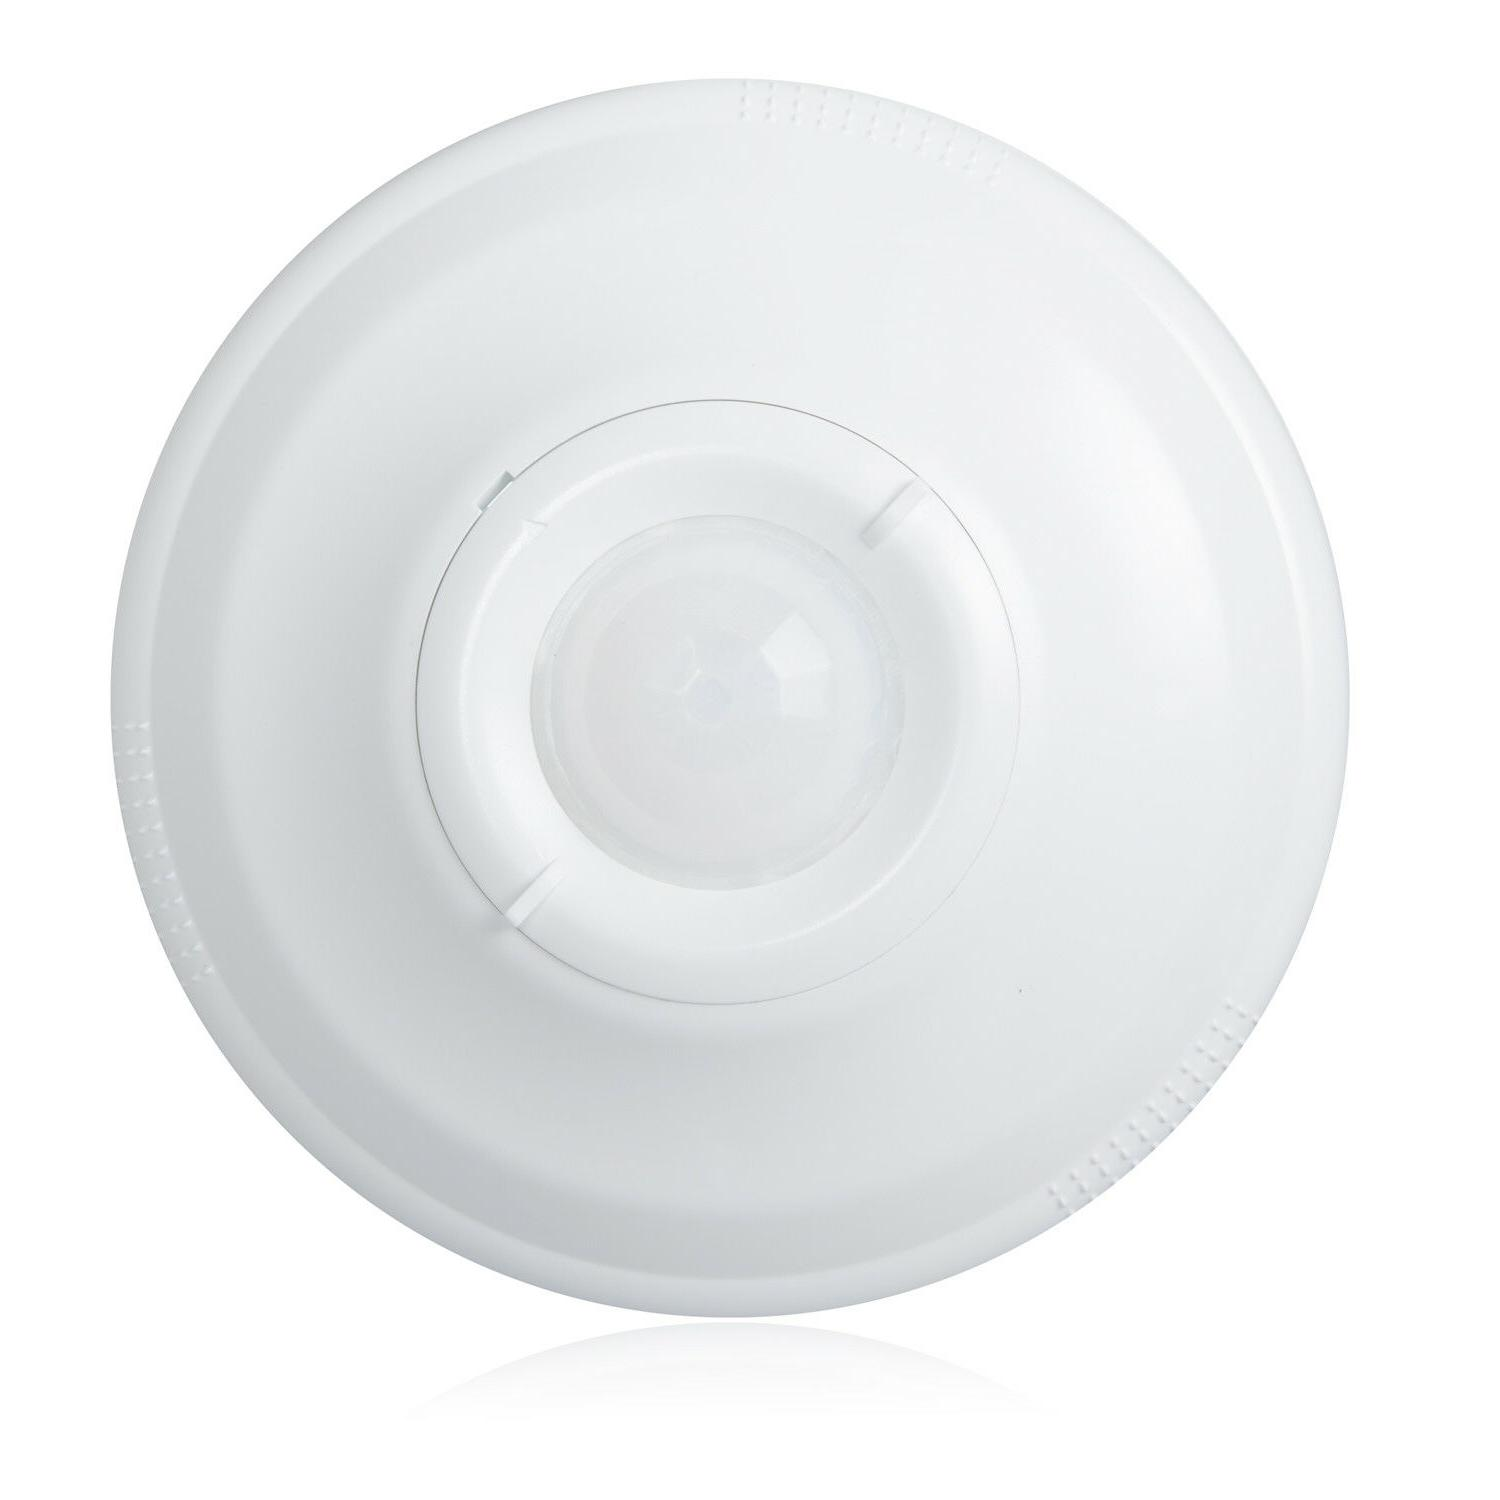 Maxxima Ceiling Mount Degree Hard-Wired Motion Sensor